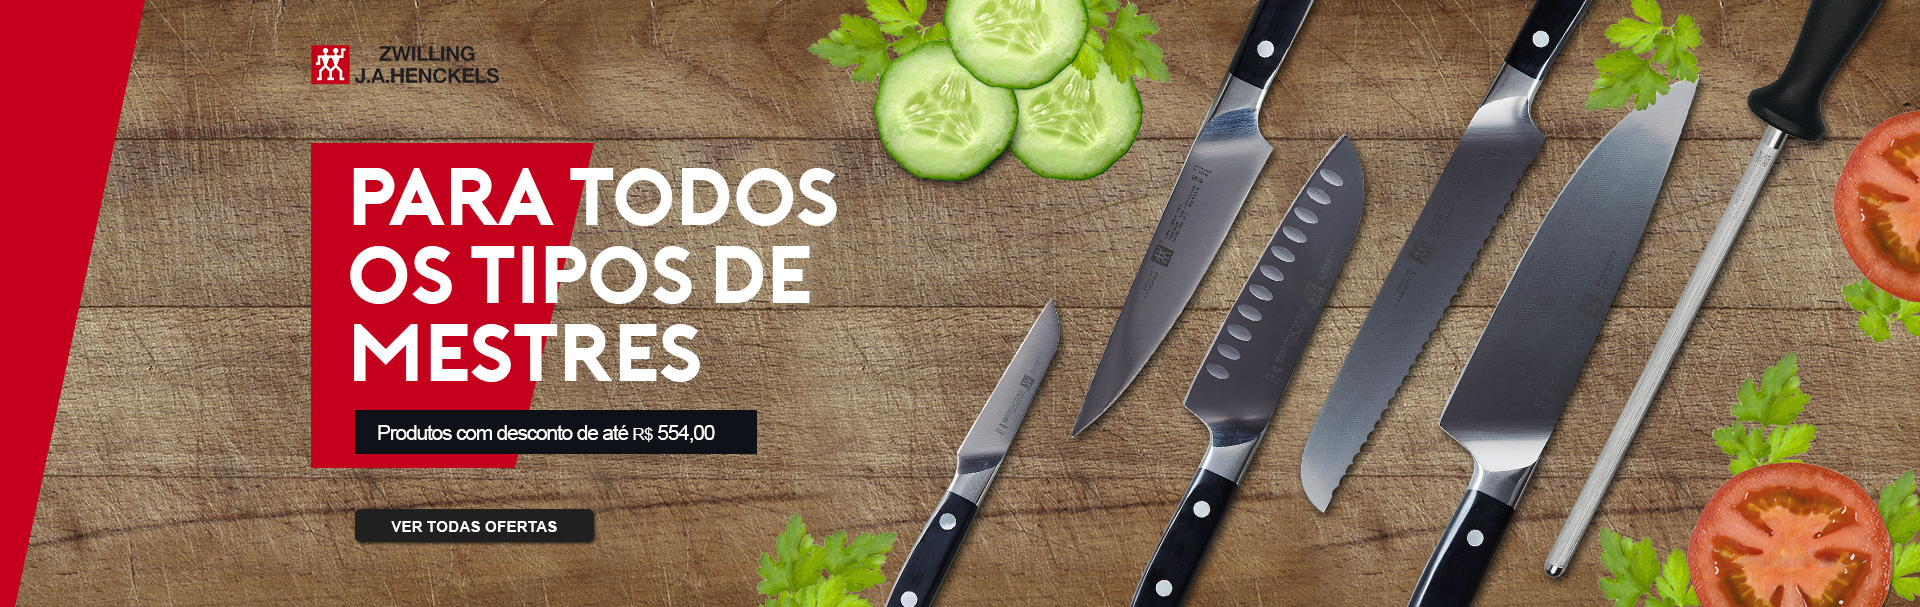 Qualidade Marca Zwilling Full Banner - Abril 18